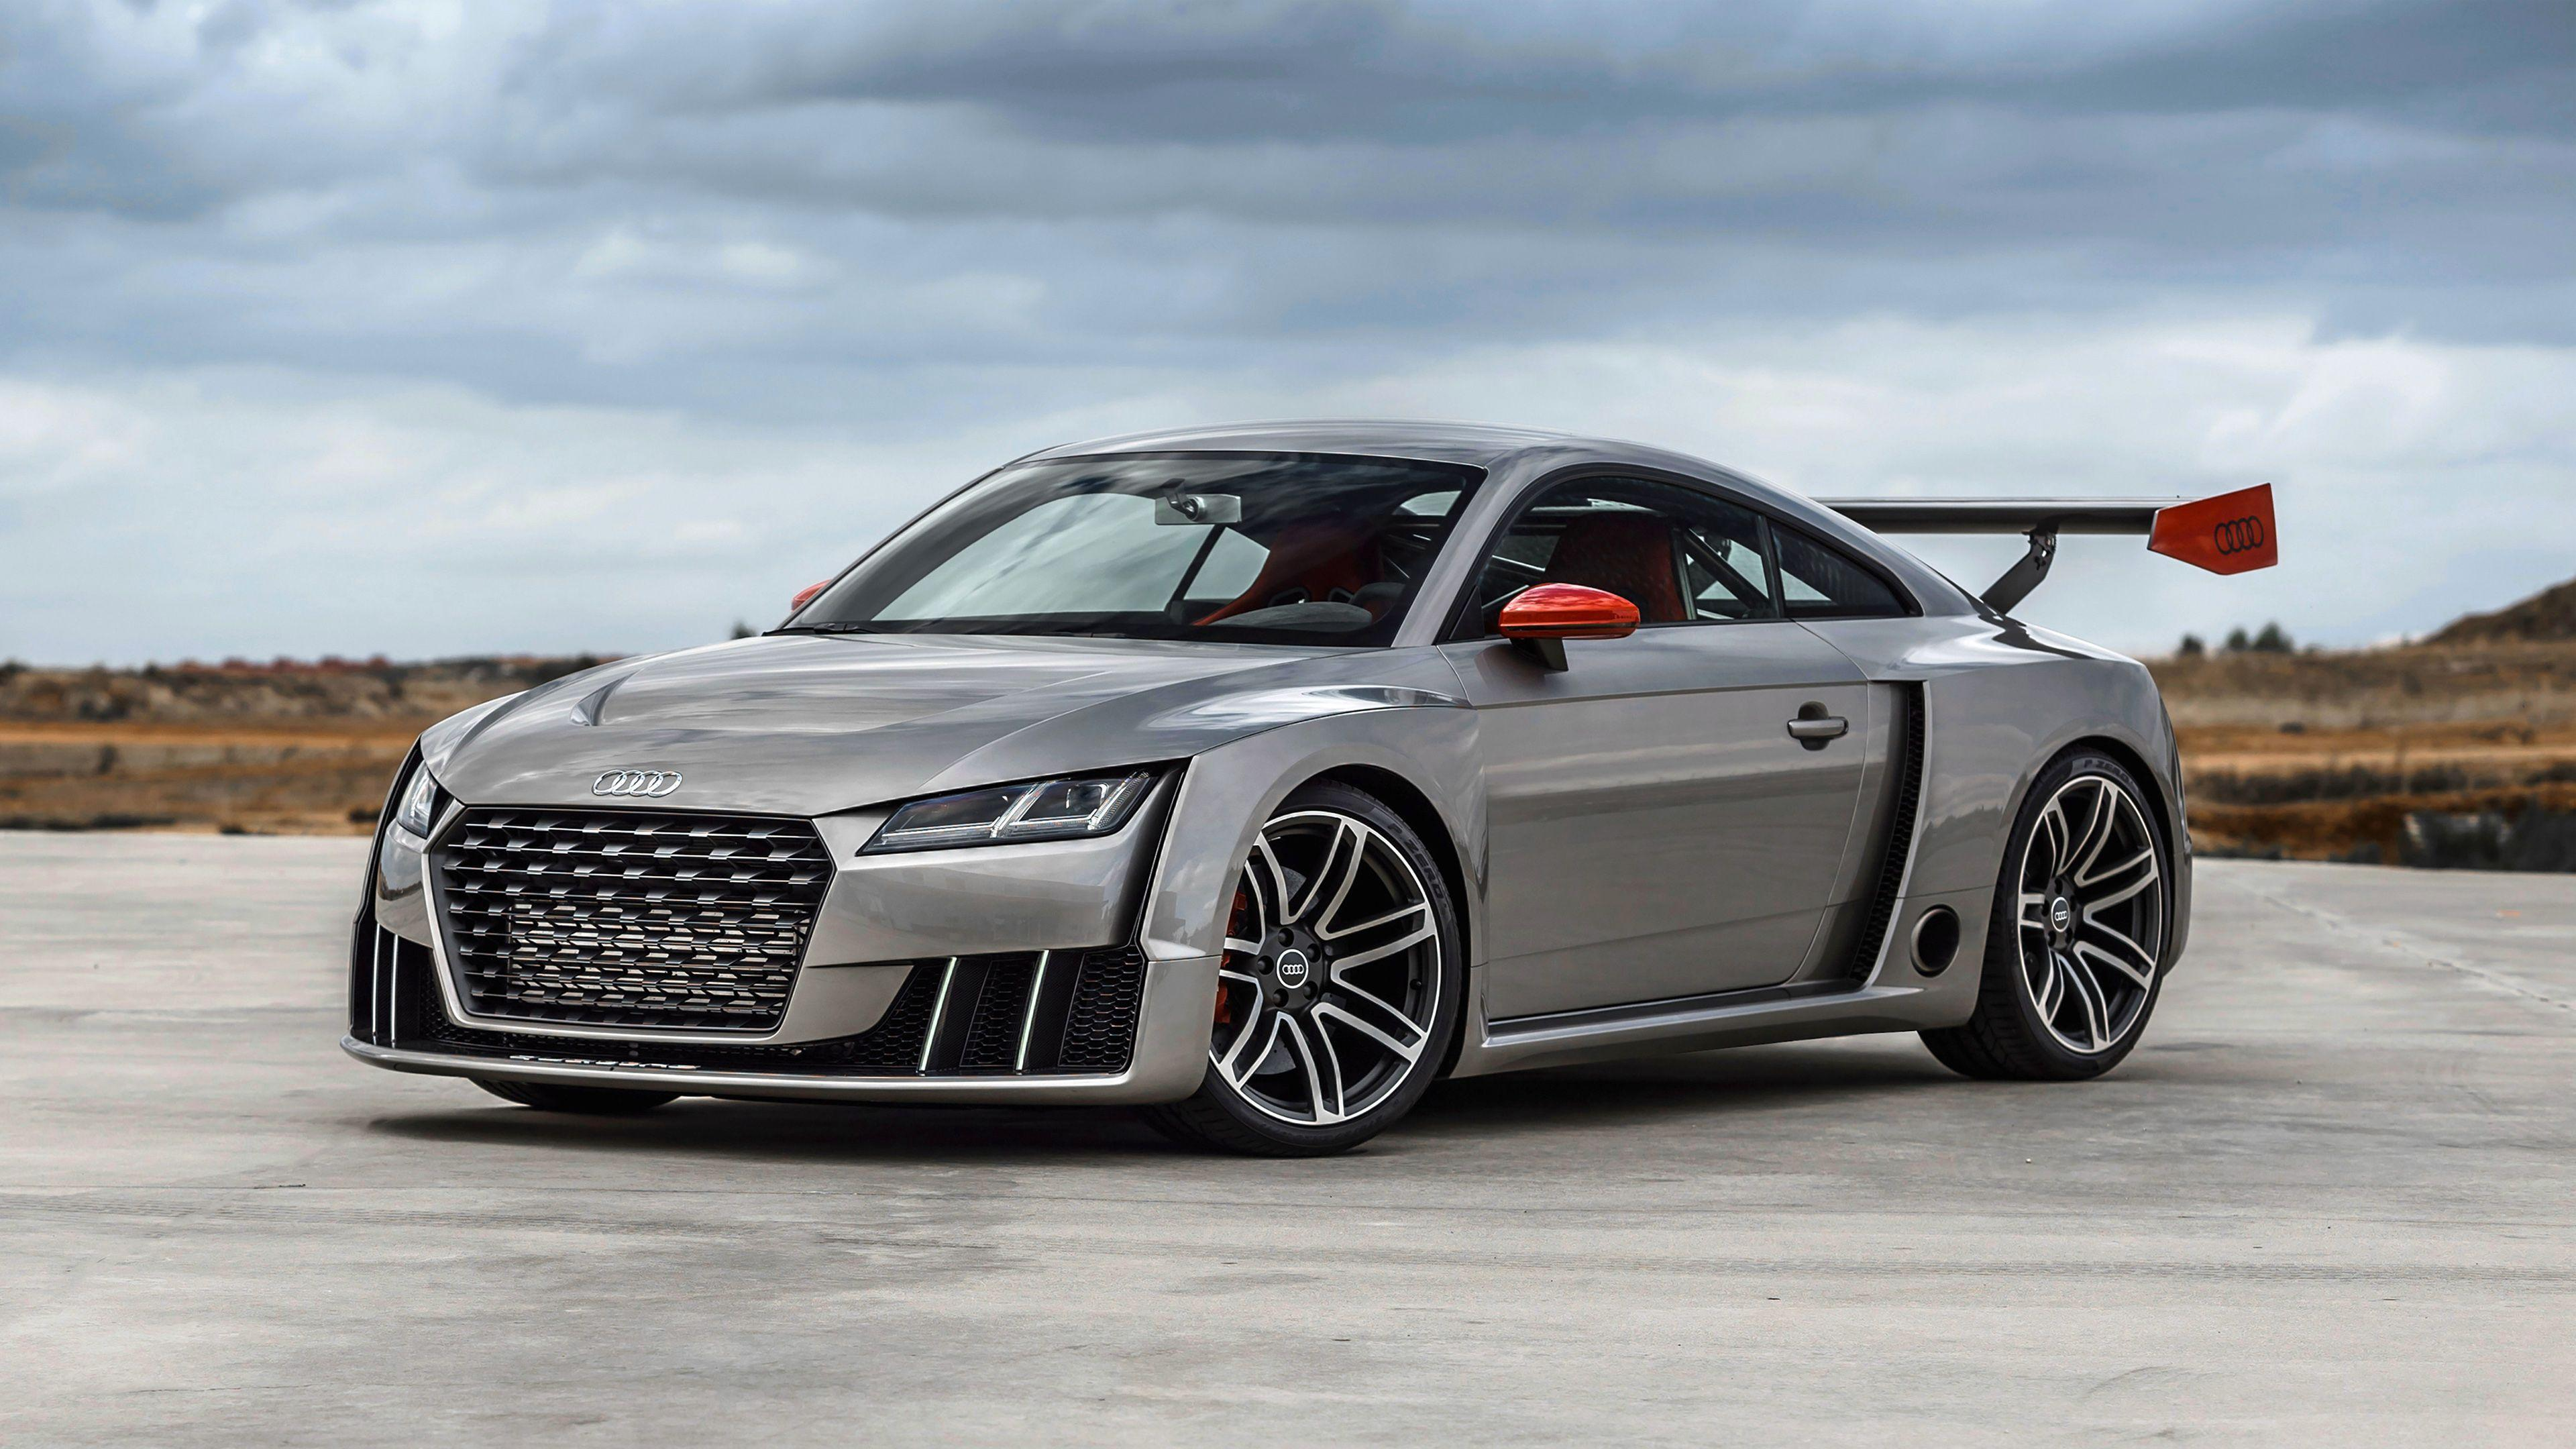 Audi Wallpapers - Page 2 - HD Wallpapers